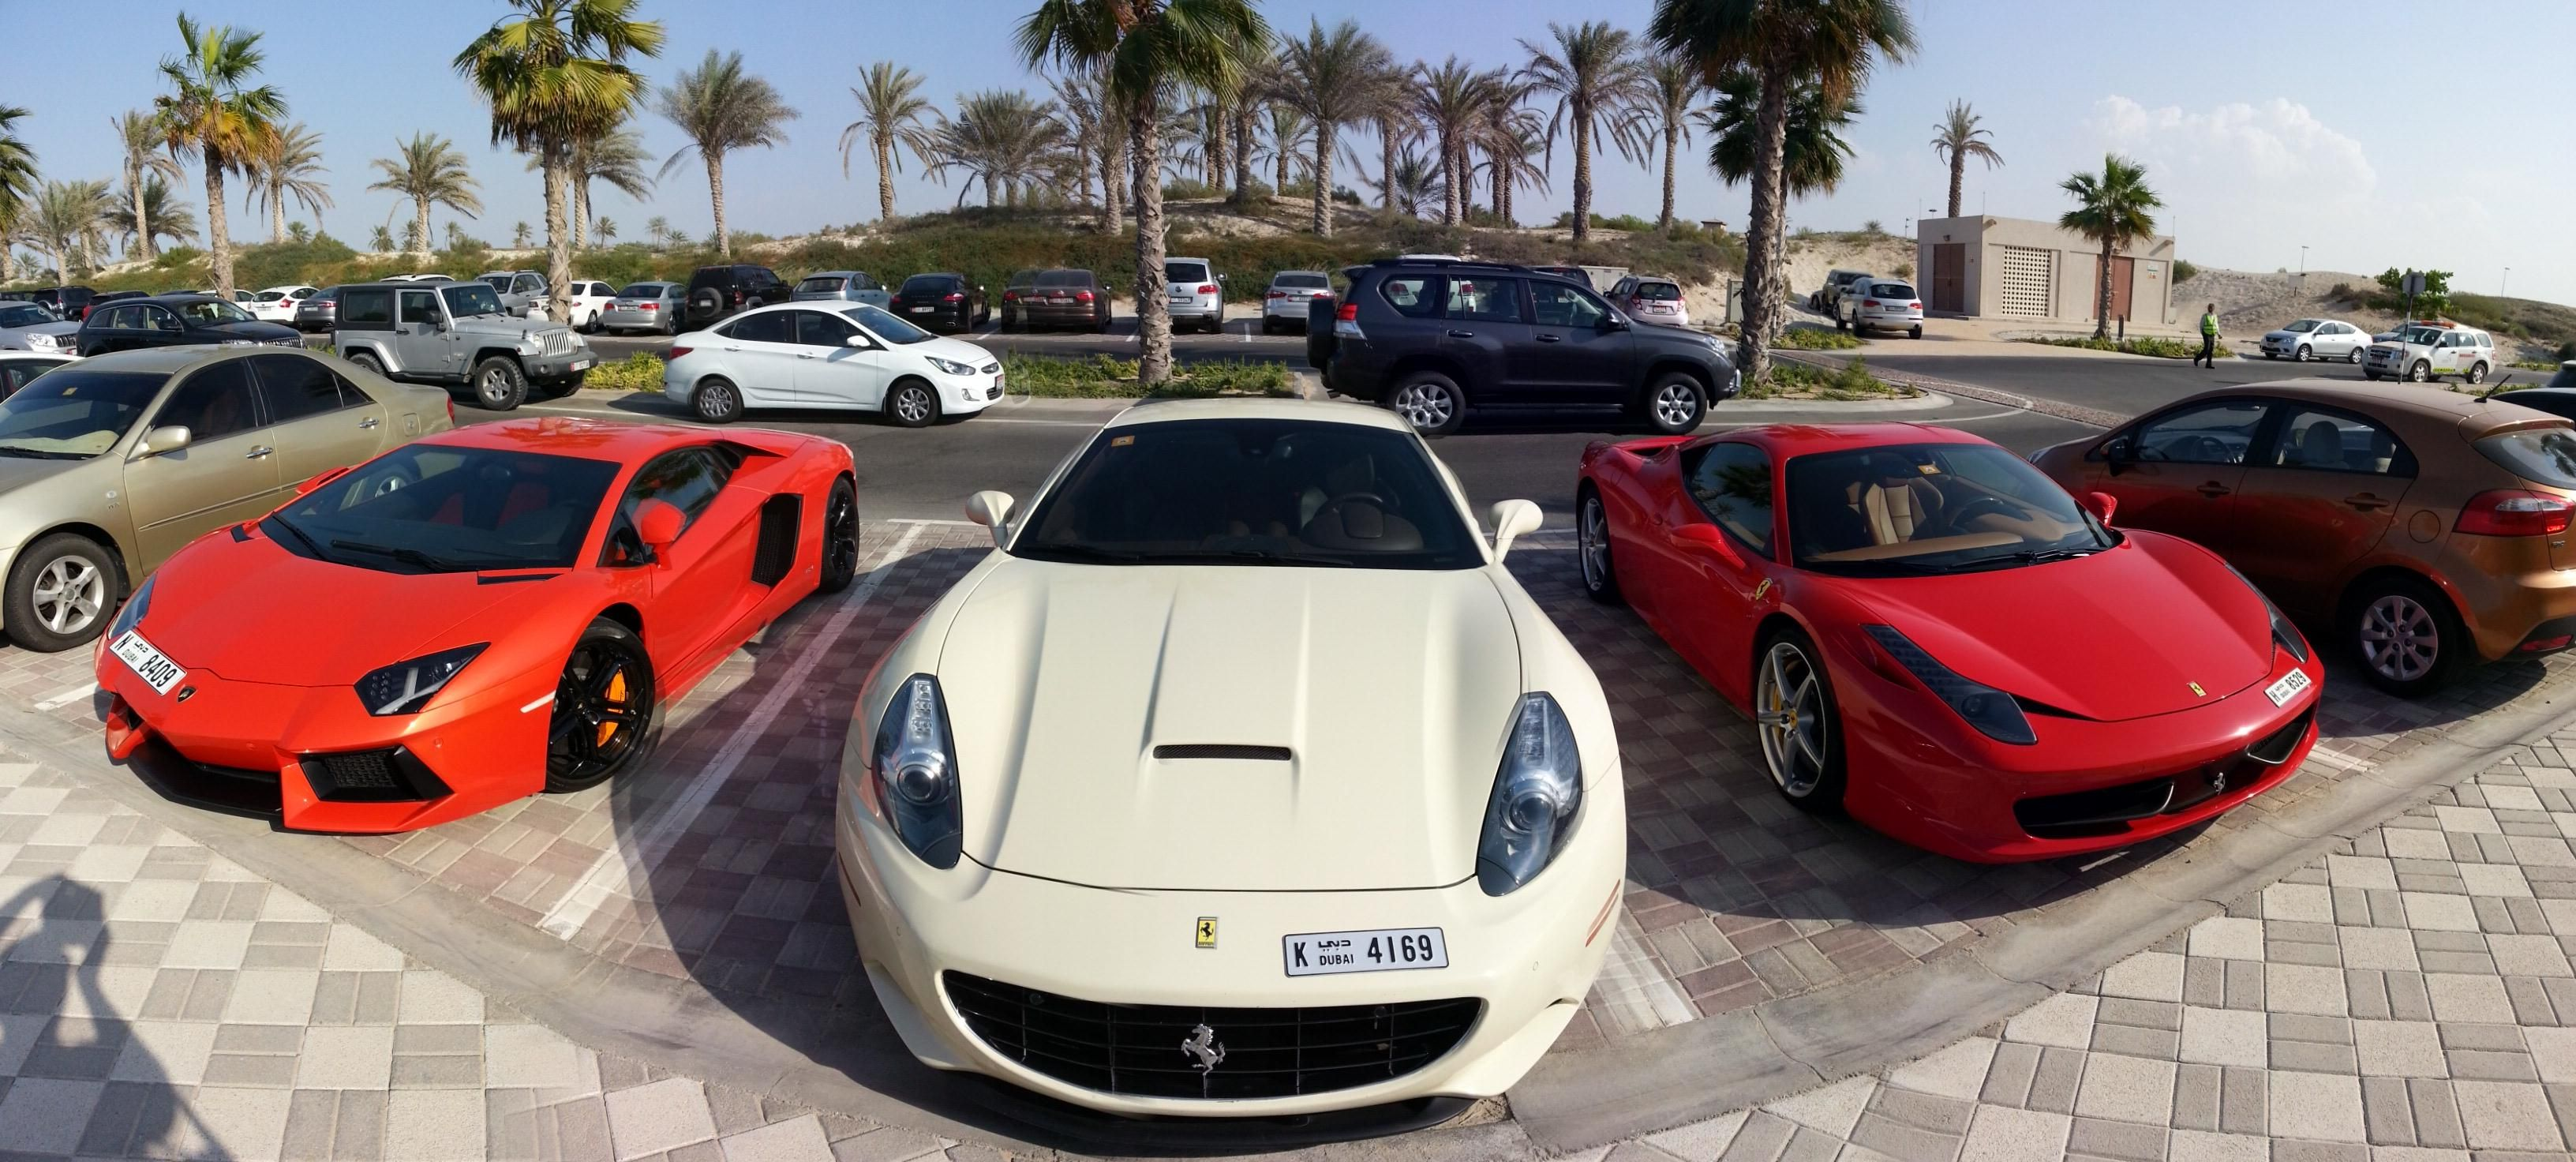 Dubai Police Impounded 81 Vehicles For Illegal Street Racing New Sports Cars Car Rental Company Luxury Cars